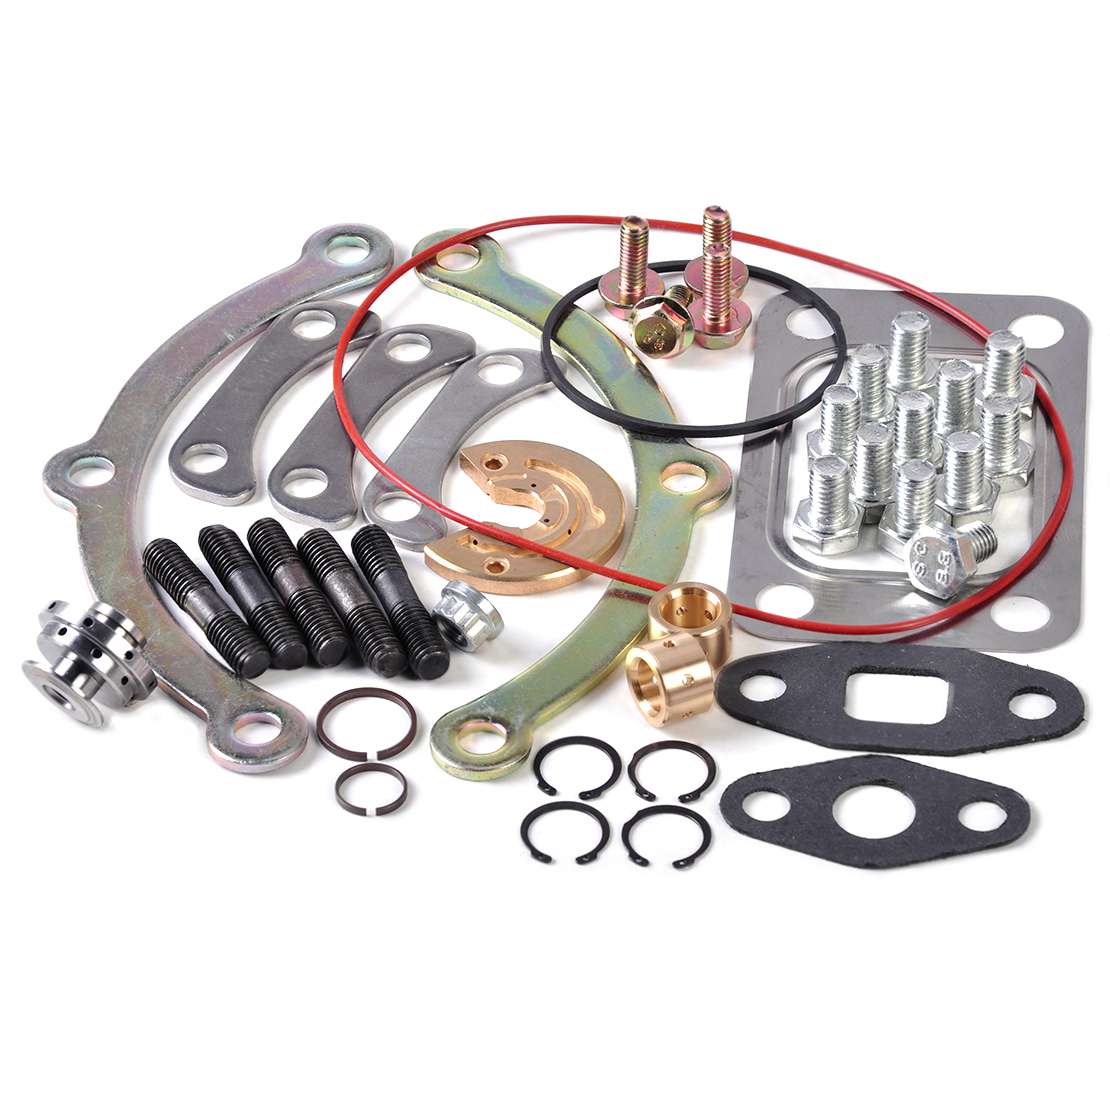 DWCX 42 Pcs/Lot Kit de Service de réparation de Turbo turbocompresseur reconstruit adapté pour T3 T4 T04B T04E Turbo chargeur